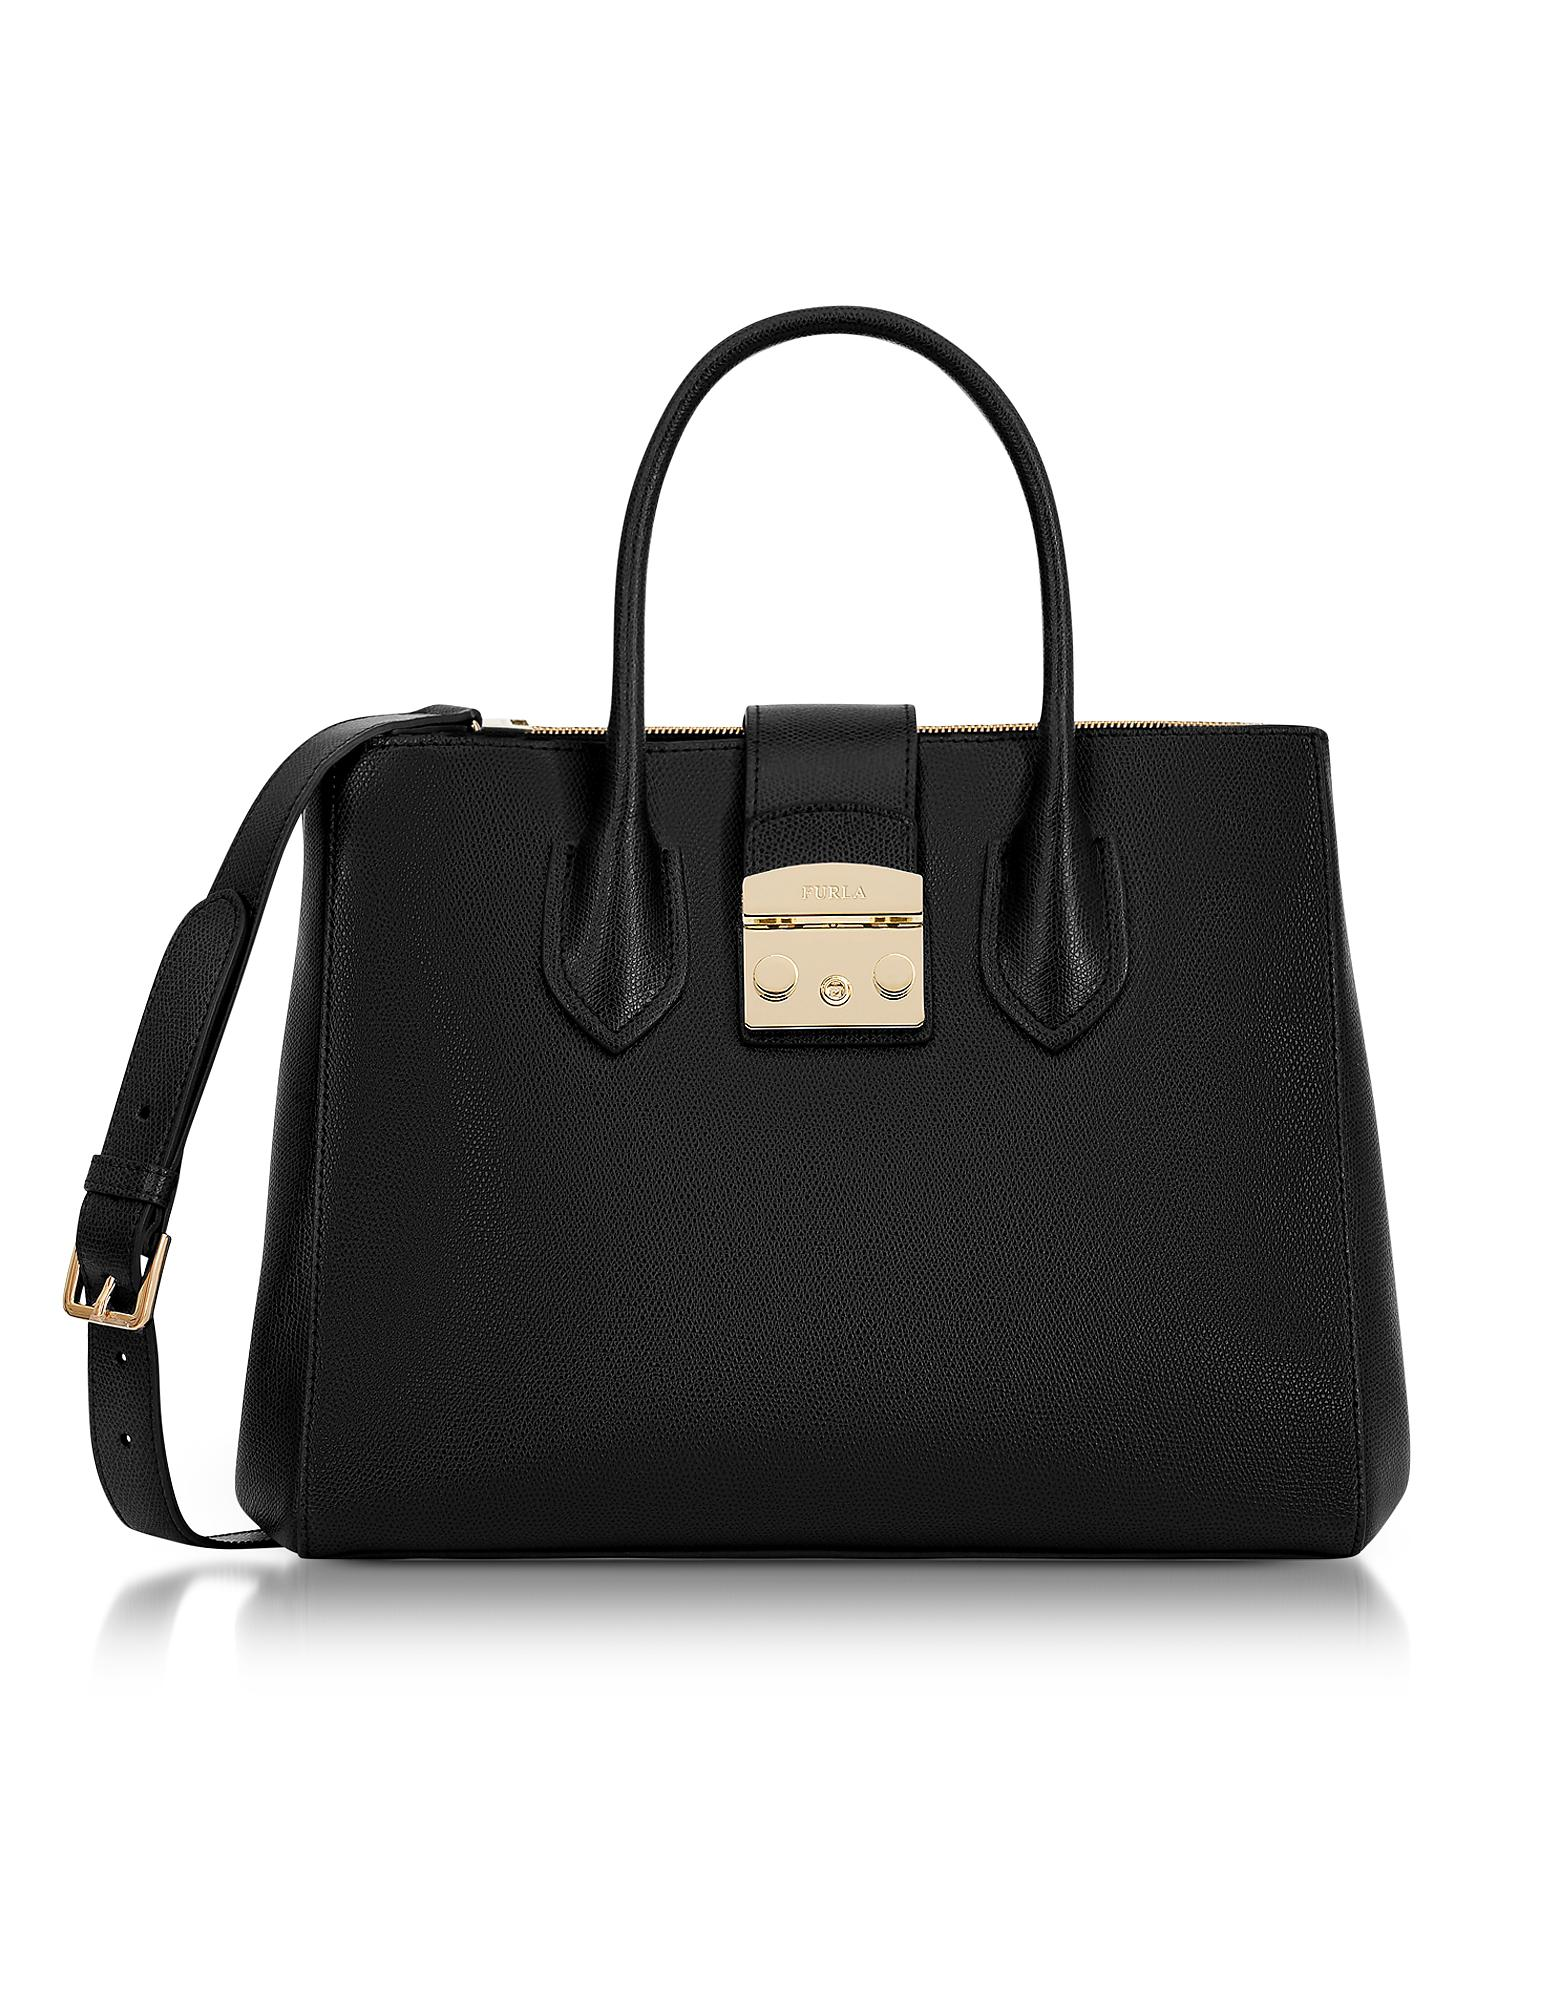 Furla Onyx Metropolis Medium Tote Bag in Black - Lyst da7ec943bcf